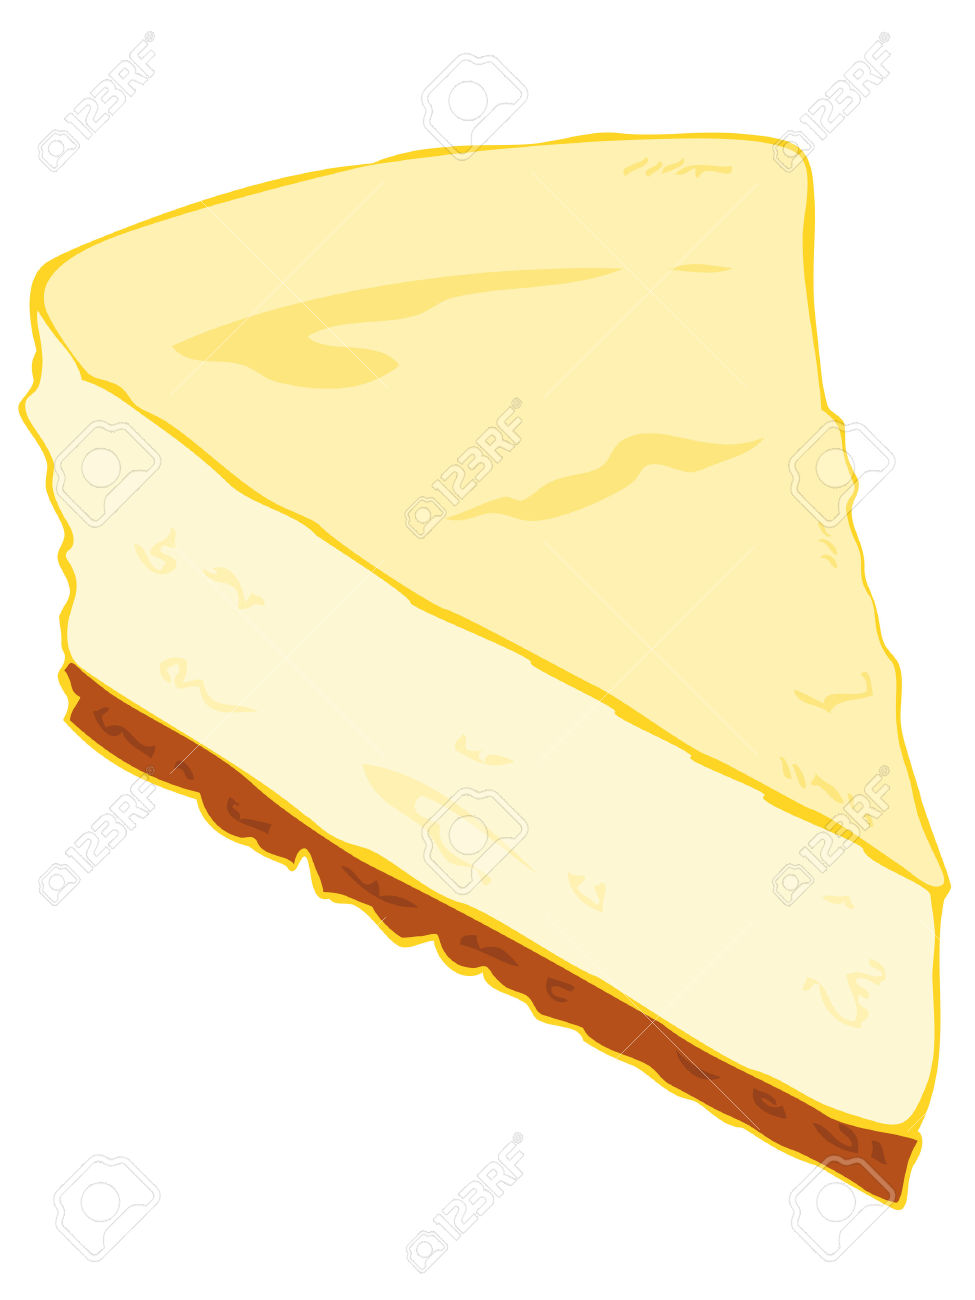 hight resolution of 975x1300 cheesecake clipart cartoon